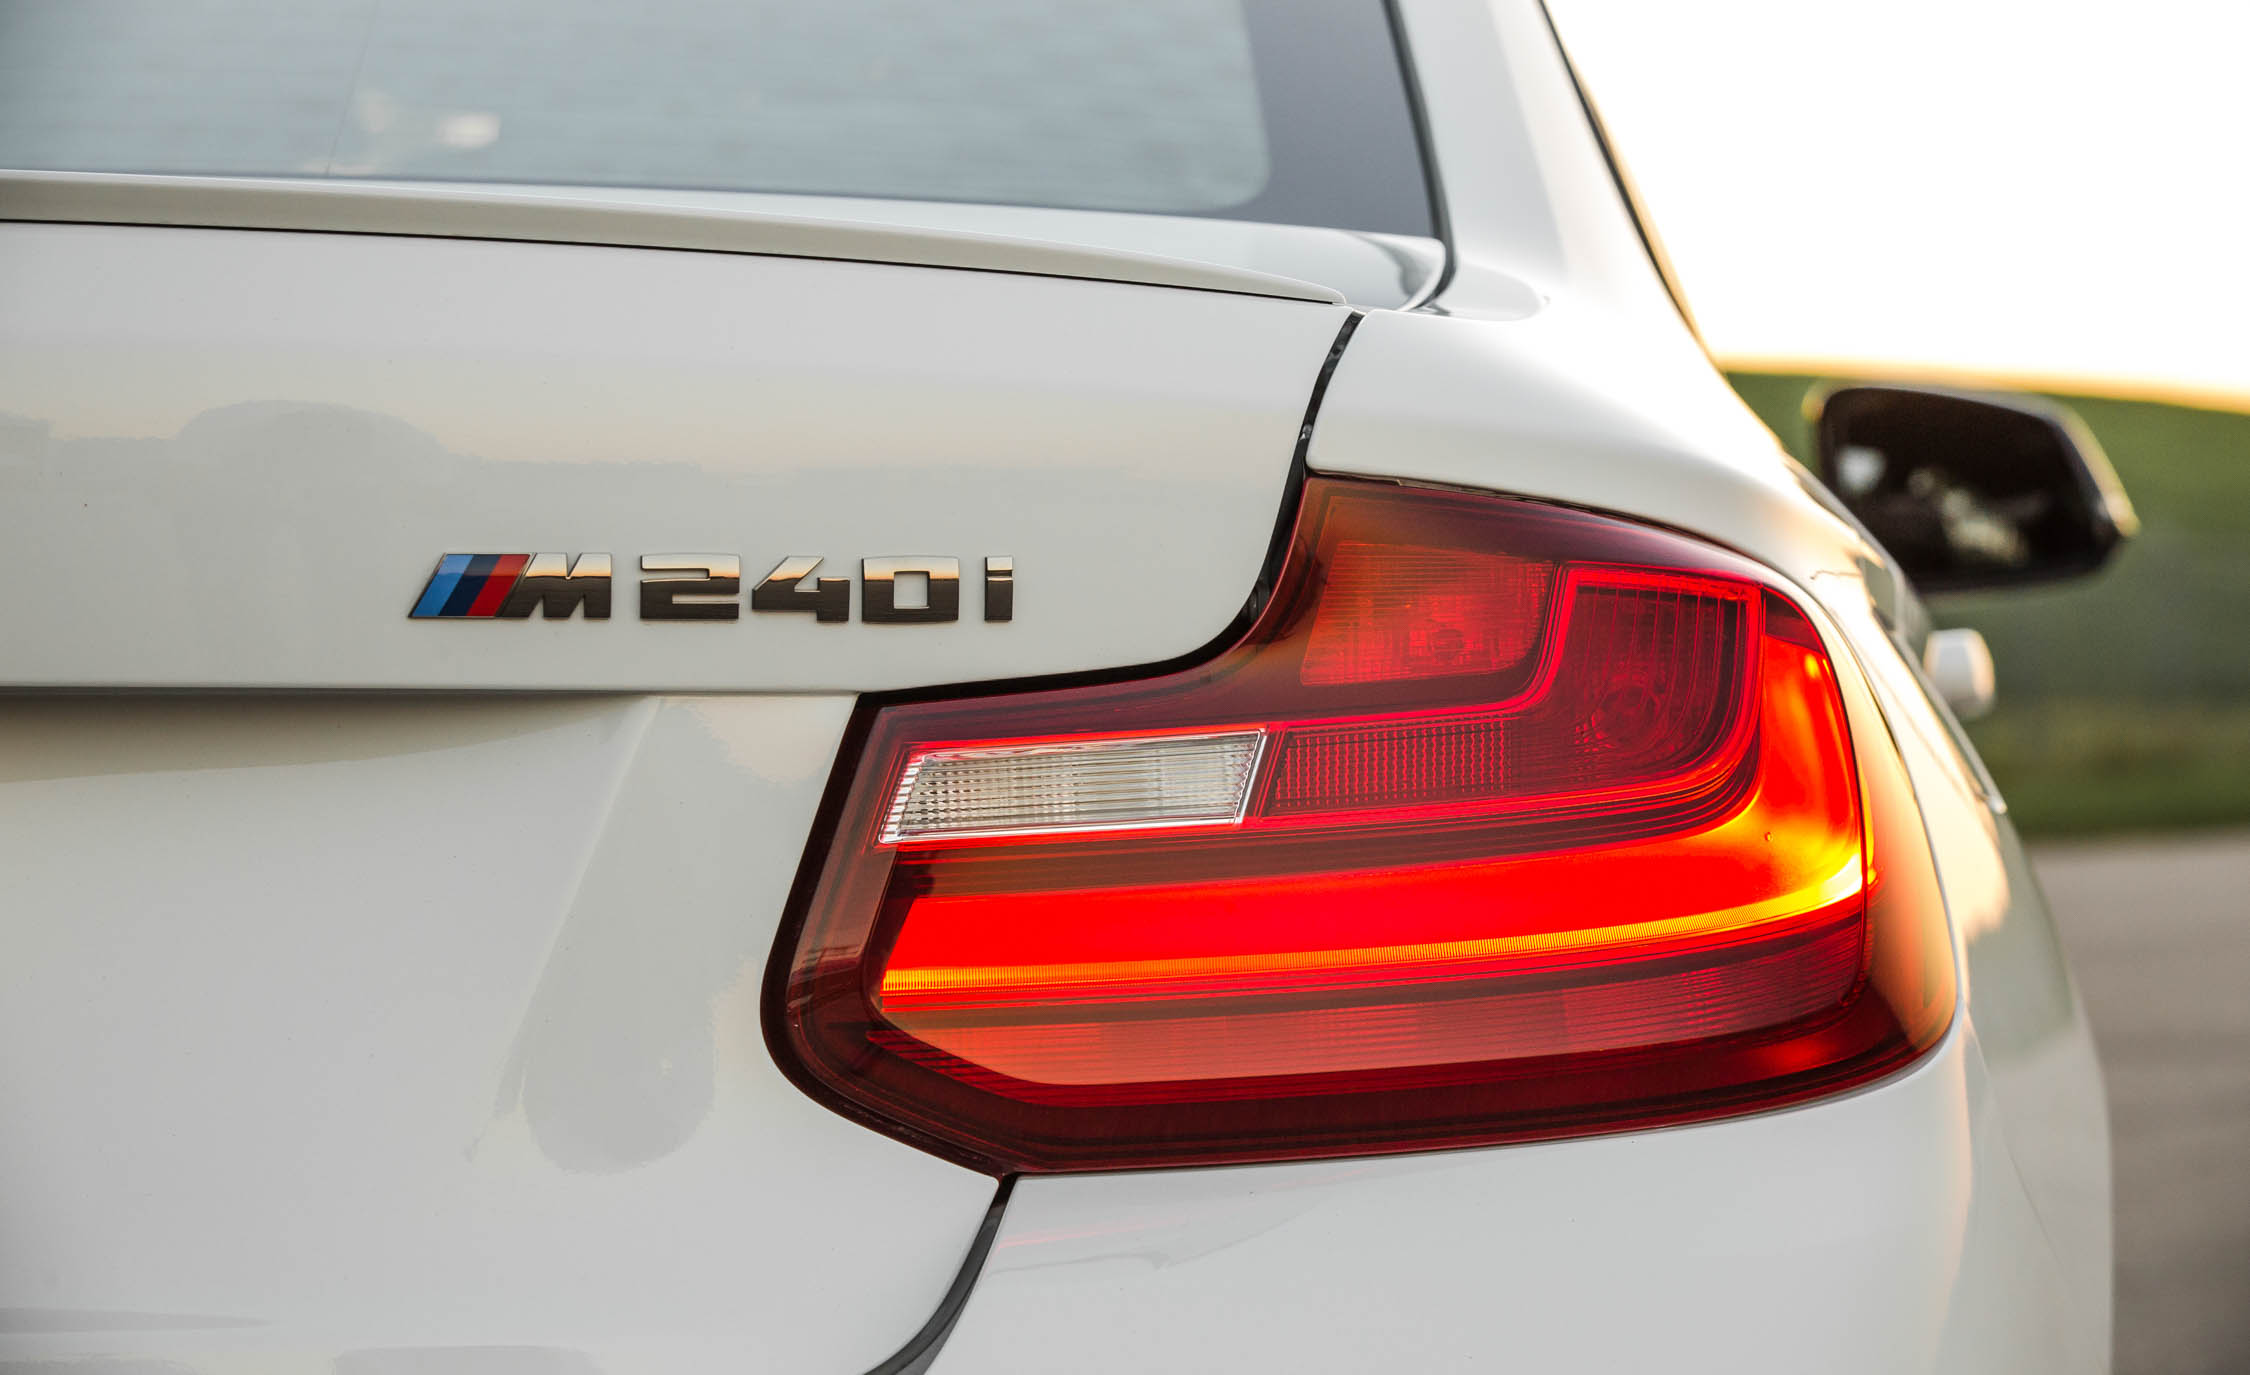 2017 BMW M240i Coupe Automatic Exterior View Rear Emblem (Photo 26 of 36)